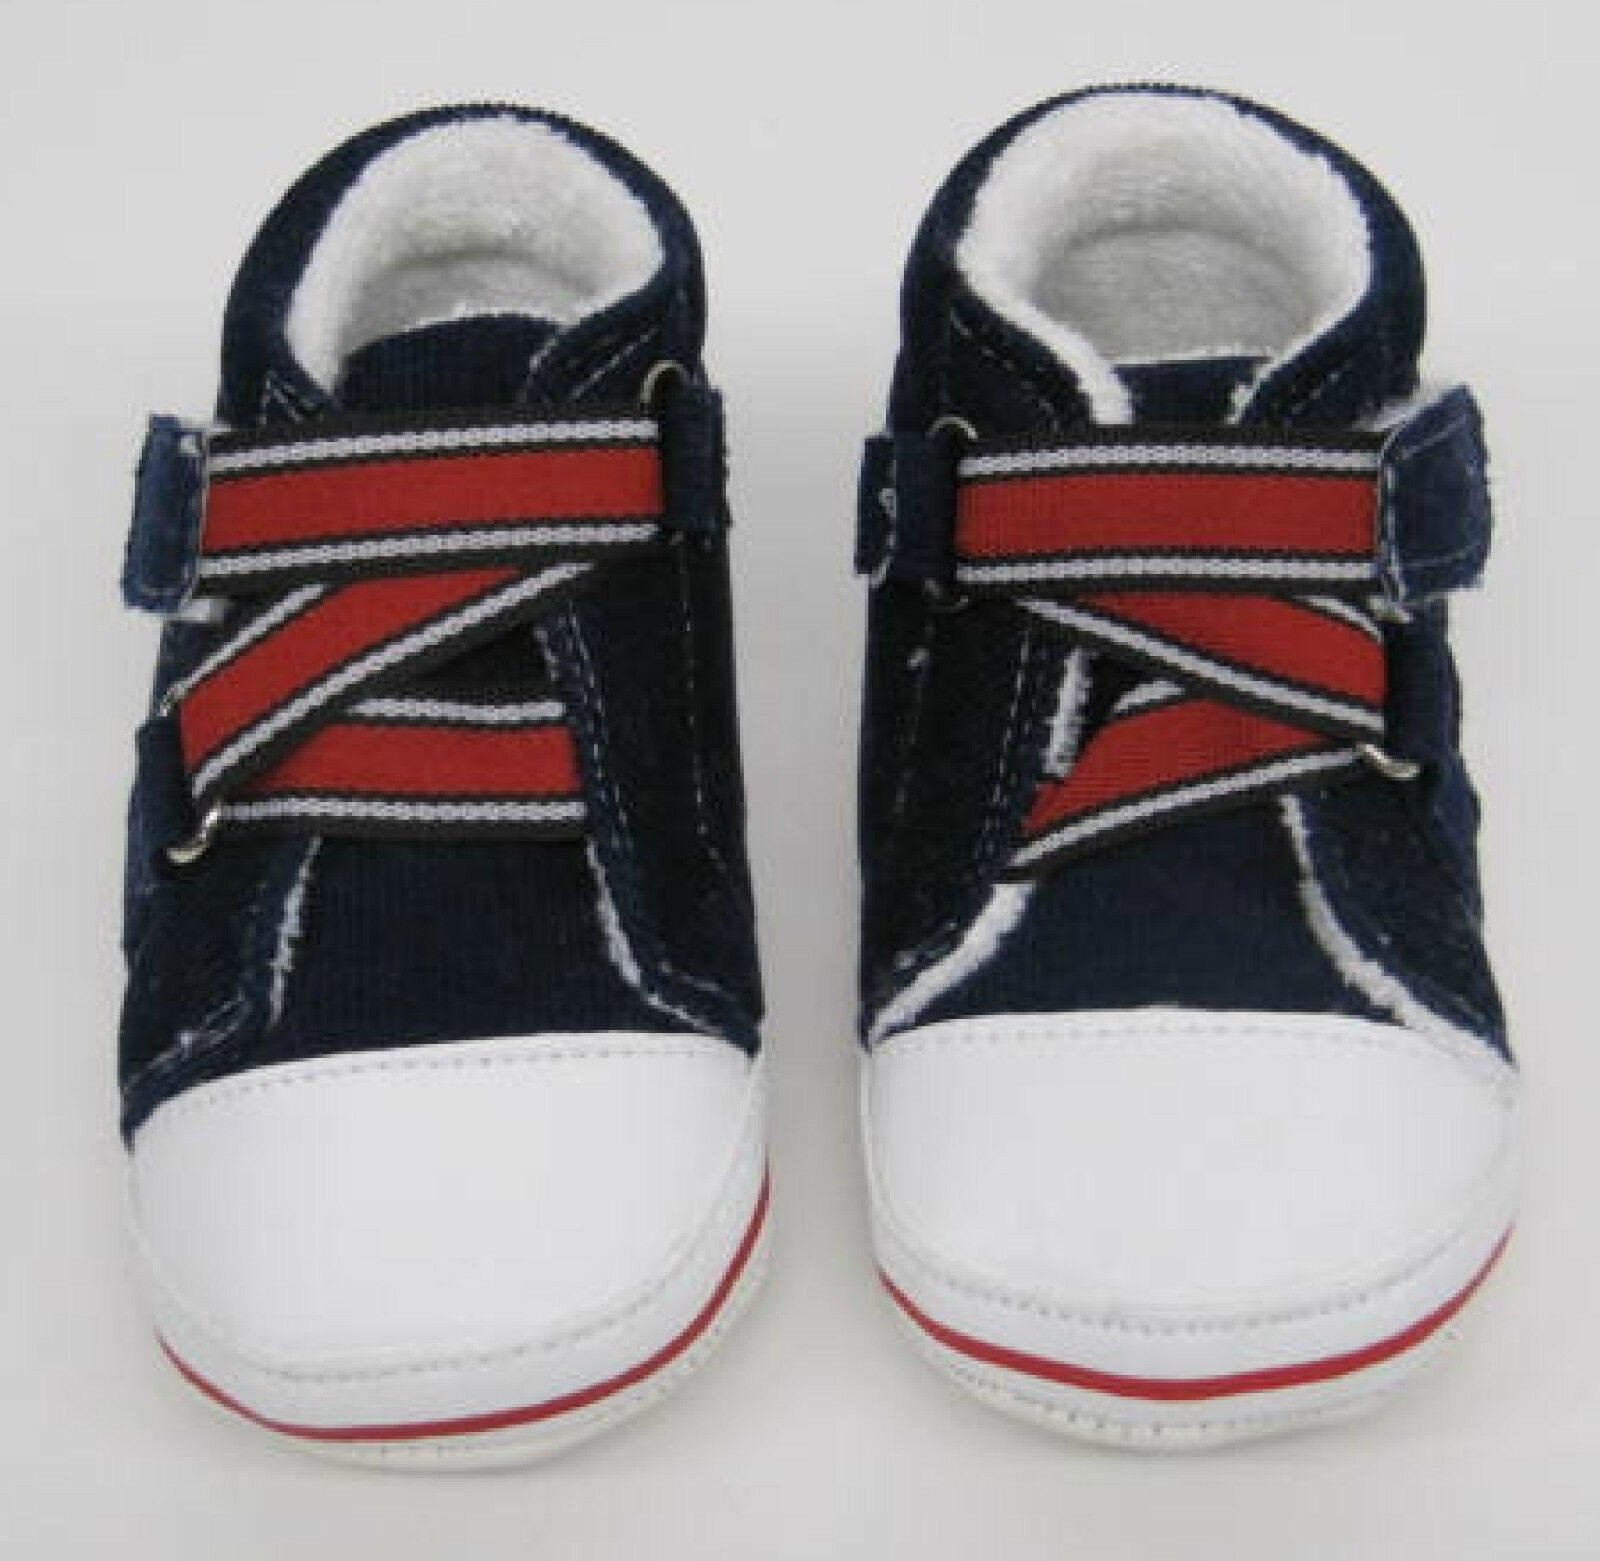 BABY BOYS GIRLS FIRST SHOES NAVY BLUE